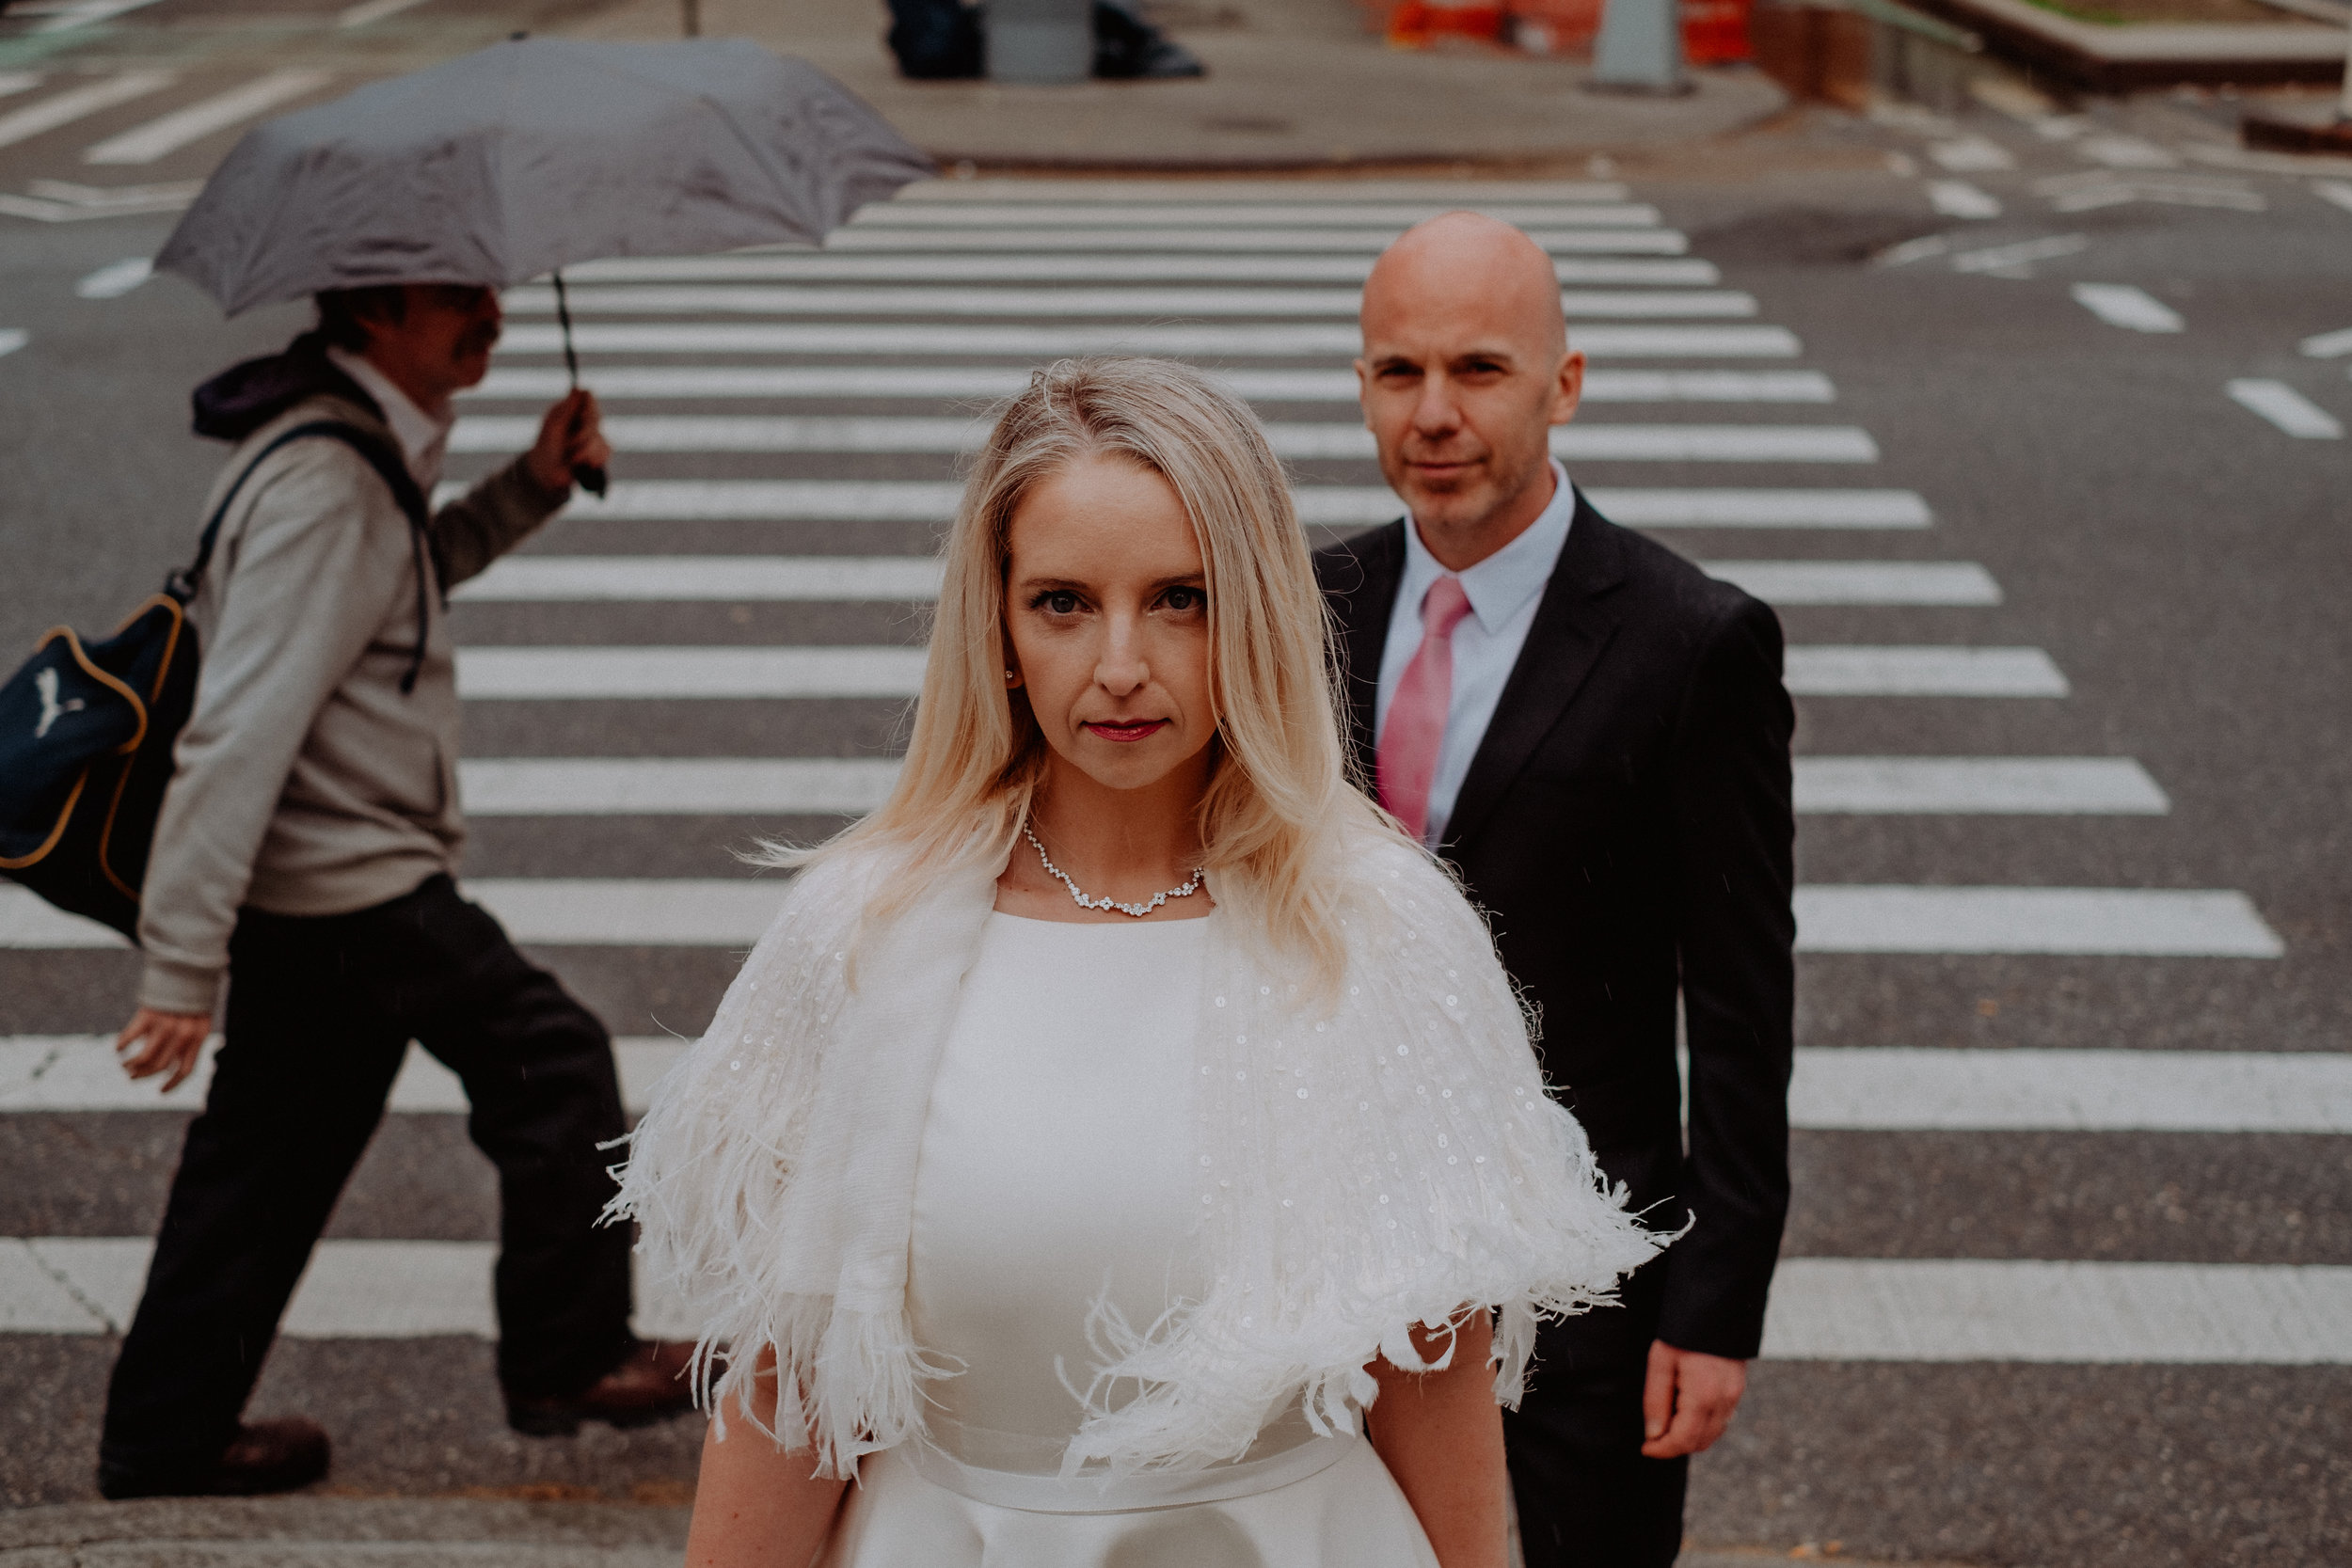 Brooklyn_City_Hall_Elopement_Photographer_Chellise_Michael_Photography255.JPG